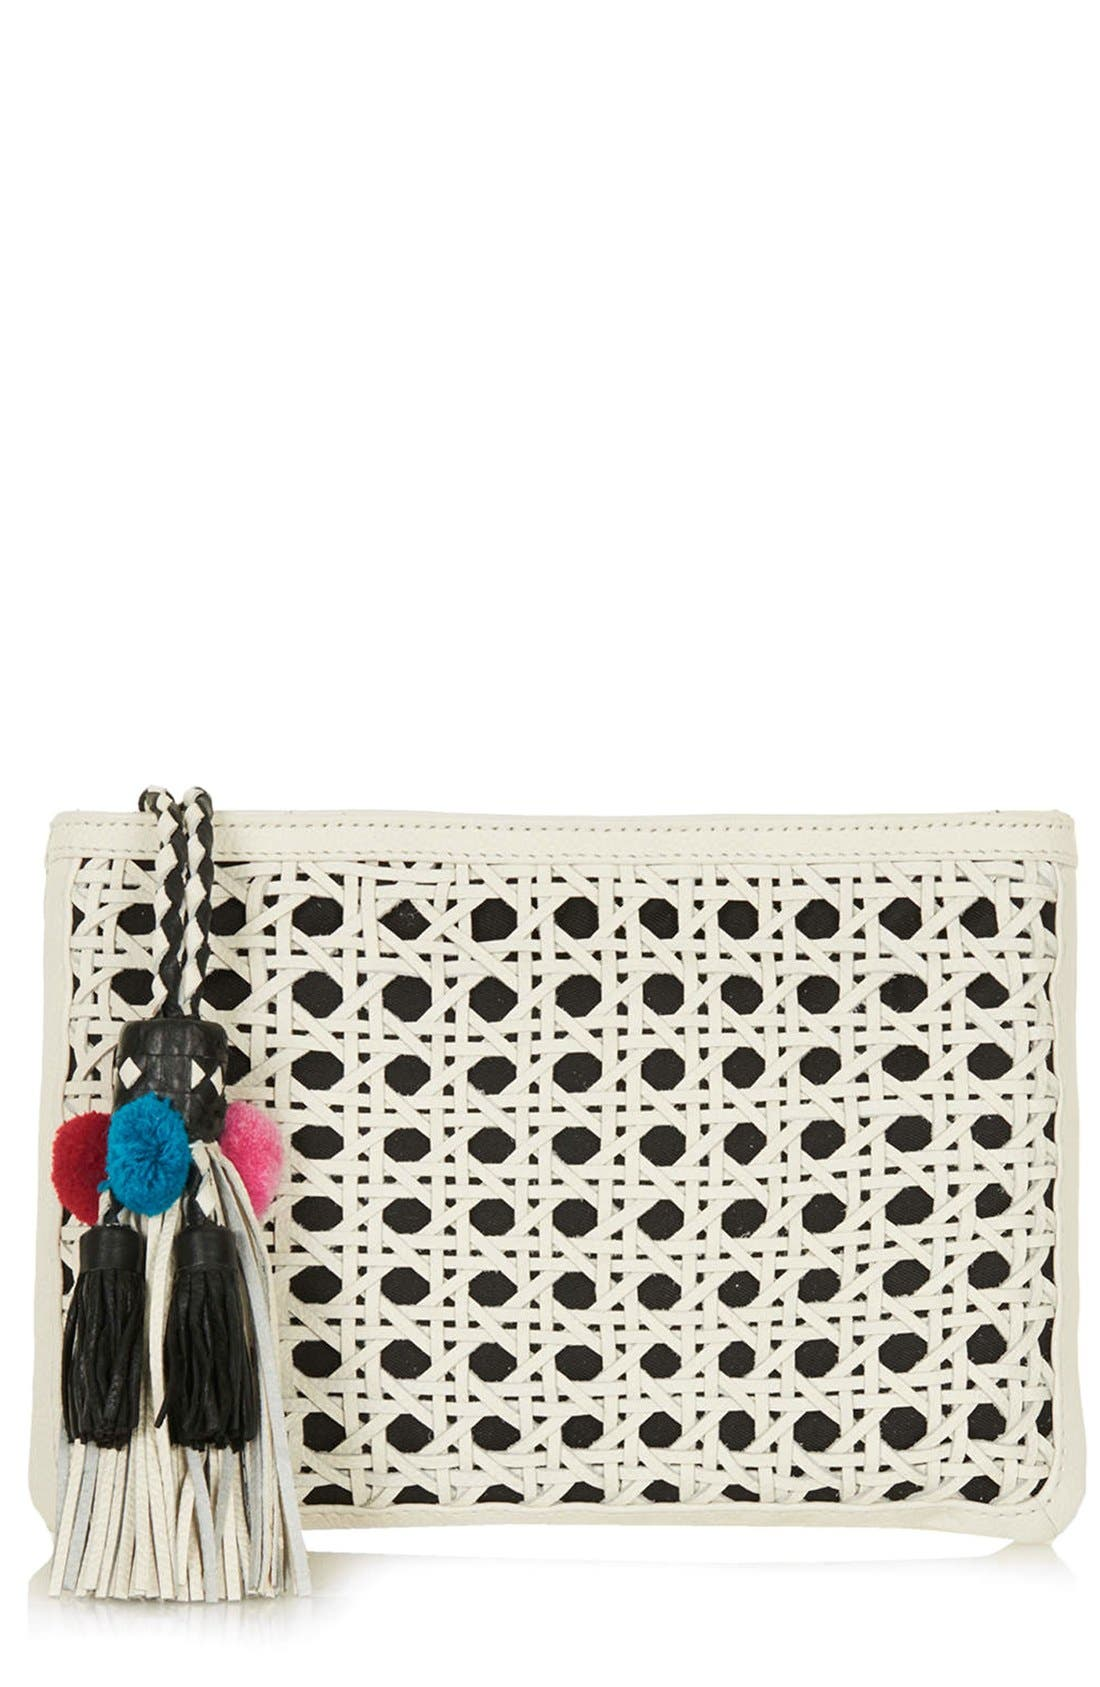 Alternate Image 1 Selected - Topshop Tassel Textured Leather Clutch